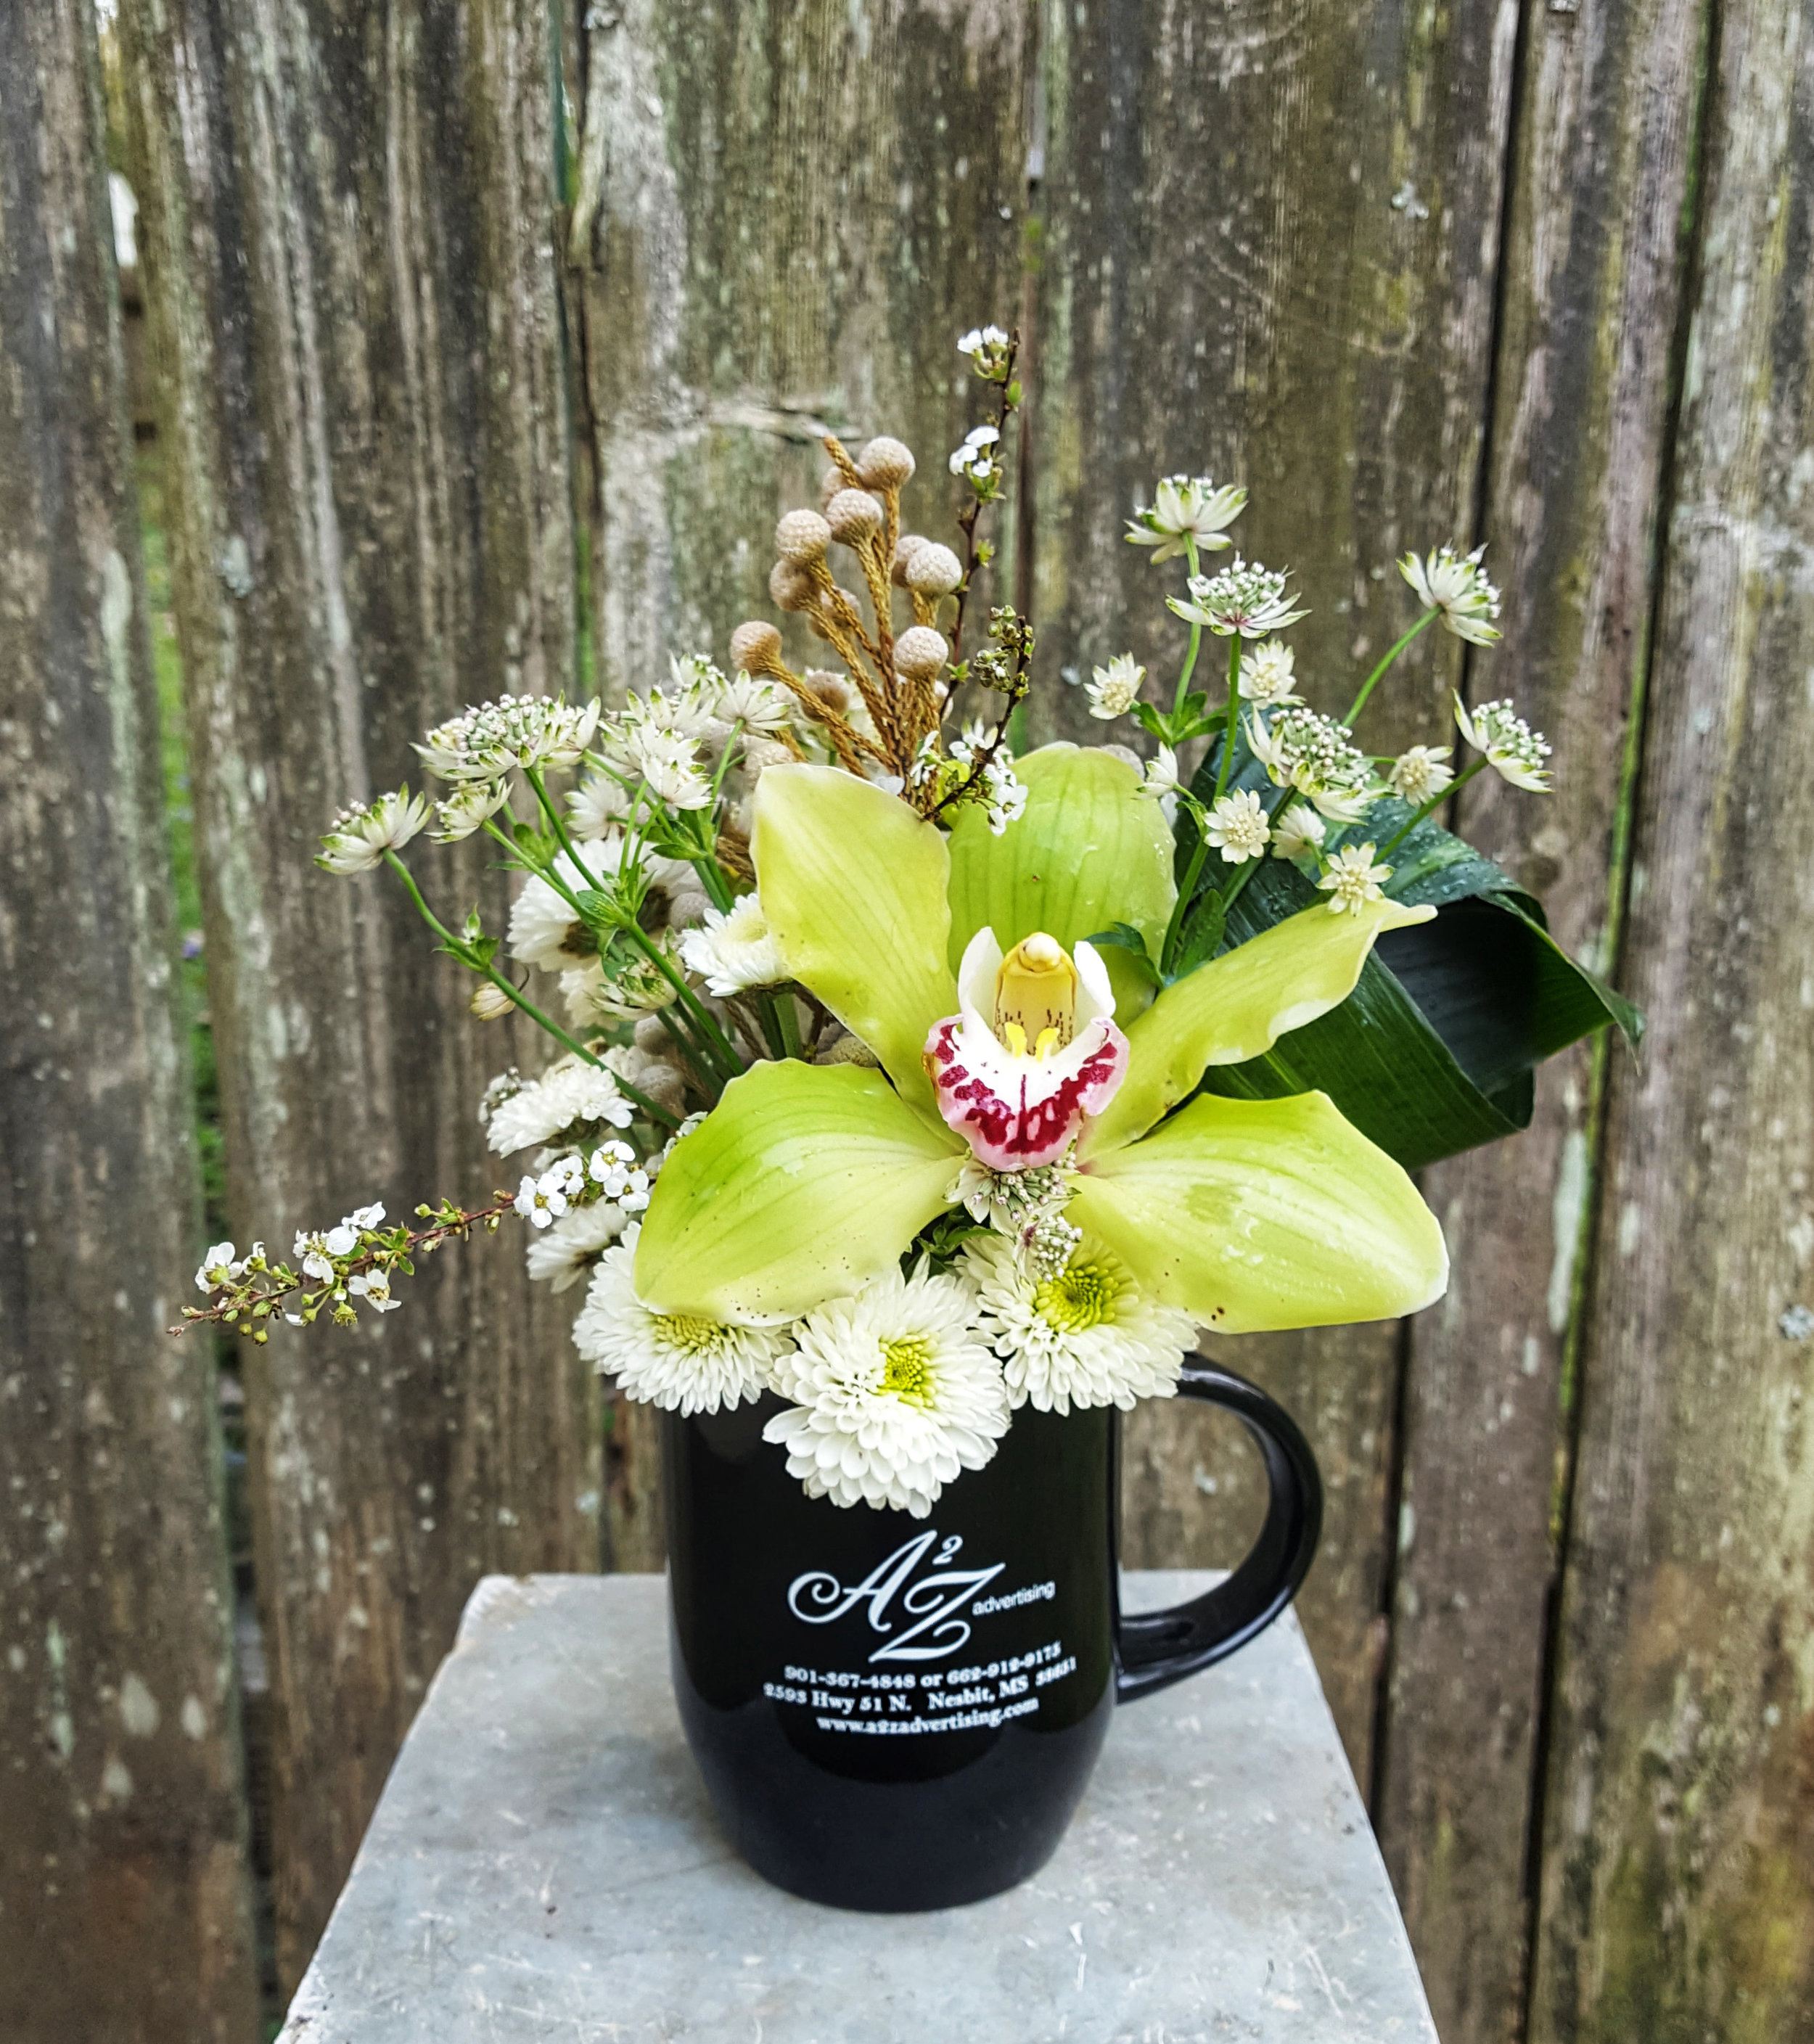 Corporate Services - Branded Floral Boxes,Custom Branded Floral Displays,Opening Party Flowers,Product Launch Flowers,Charity Events,Trunk Show Floral Displays,Product and Photoshoot Styling,Corporate Floral Gifts and Thank-yous.